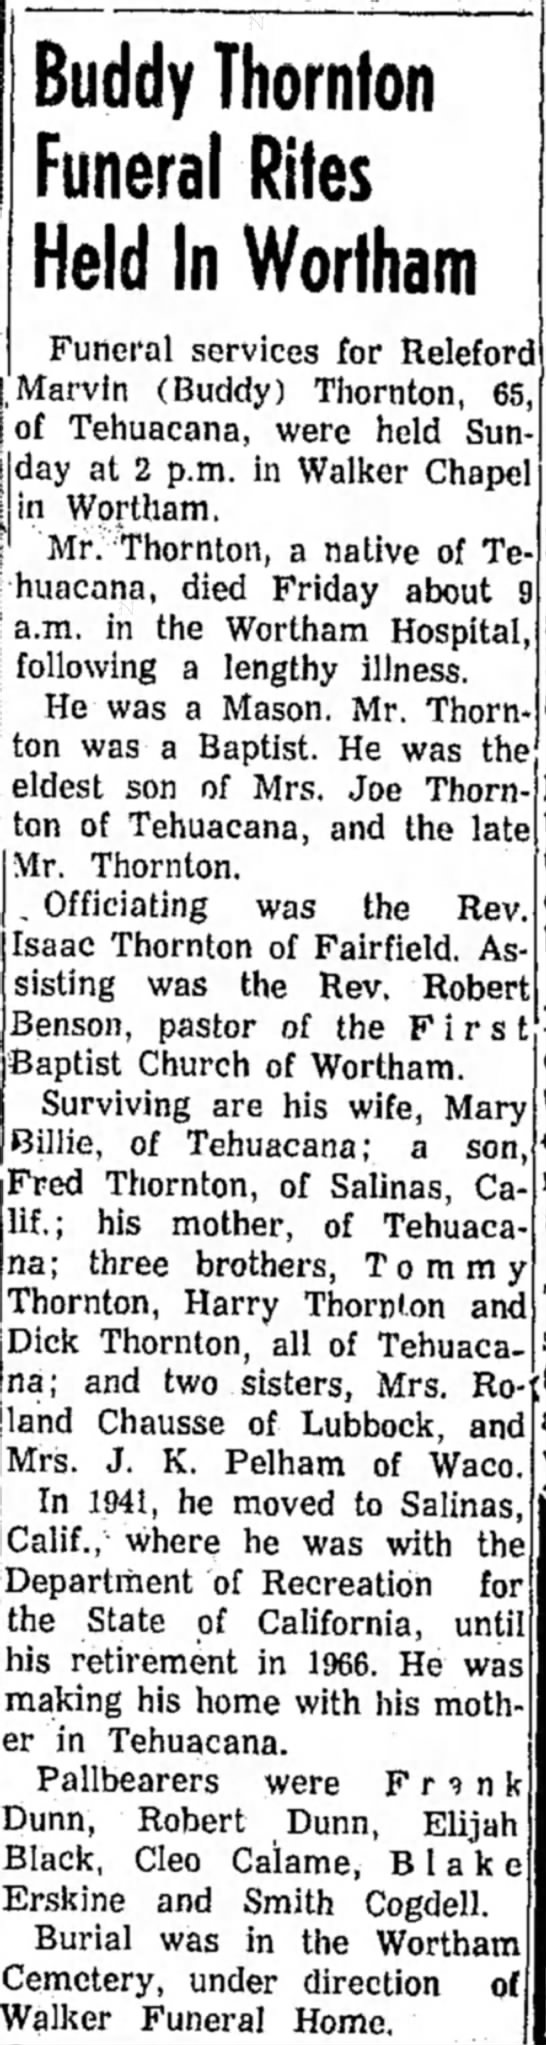 Buddy Thornton Funeral; brother to Tom, Dick and Harry Thornton - Buddy Thornton Funeral Rites Held In Wortham...